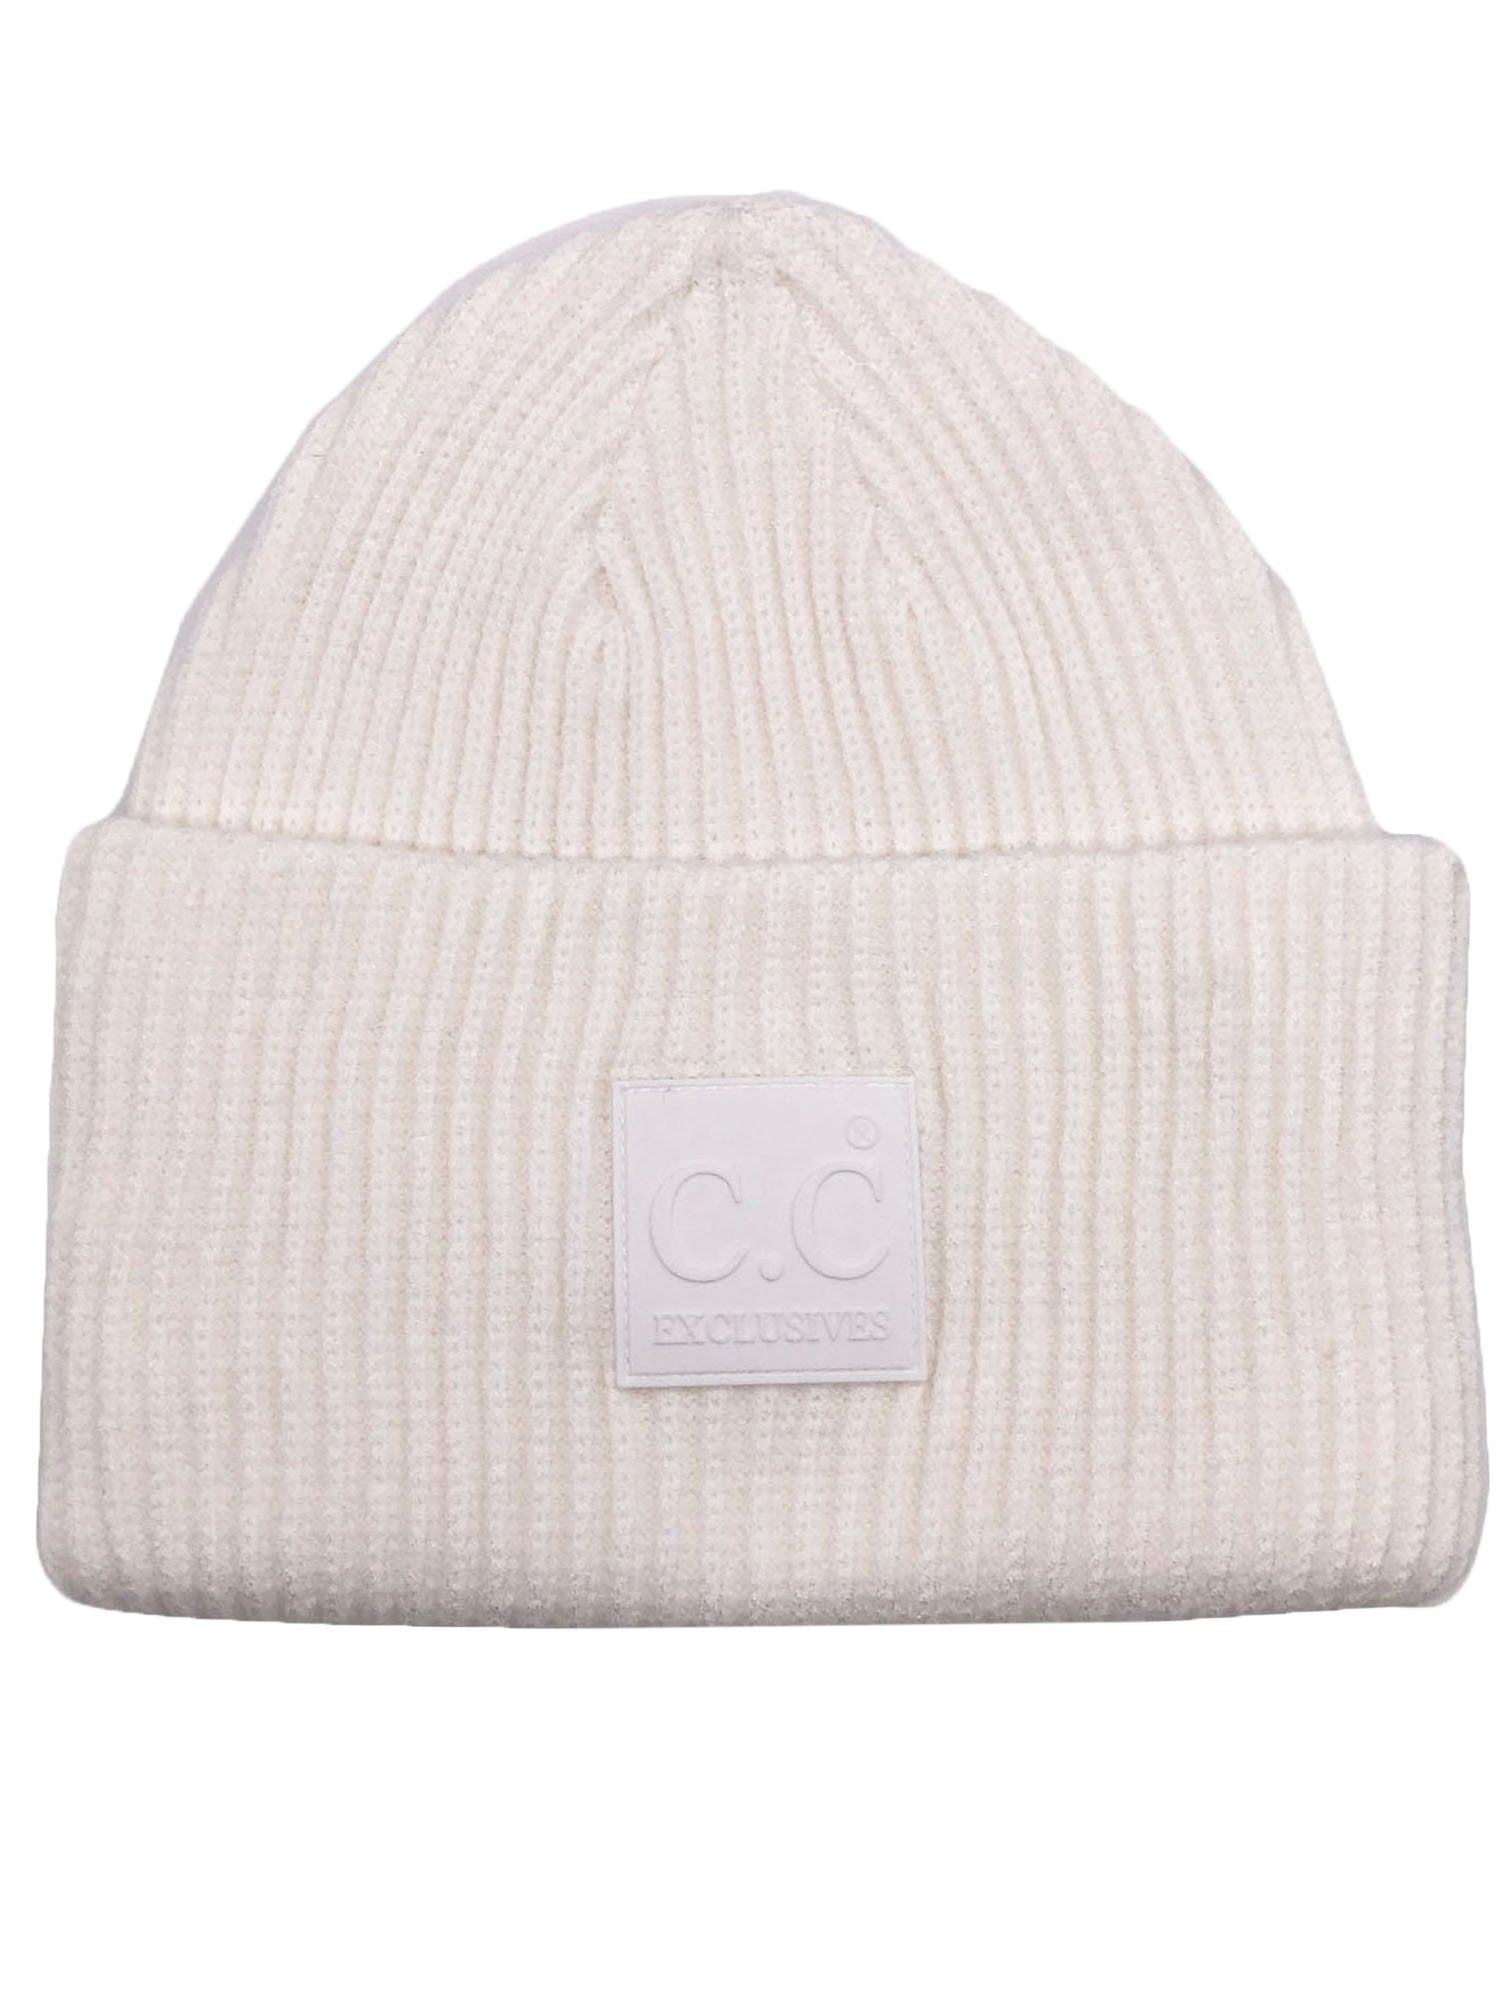 HAT-7007 Beanie with Rubber Patch Ivory